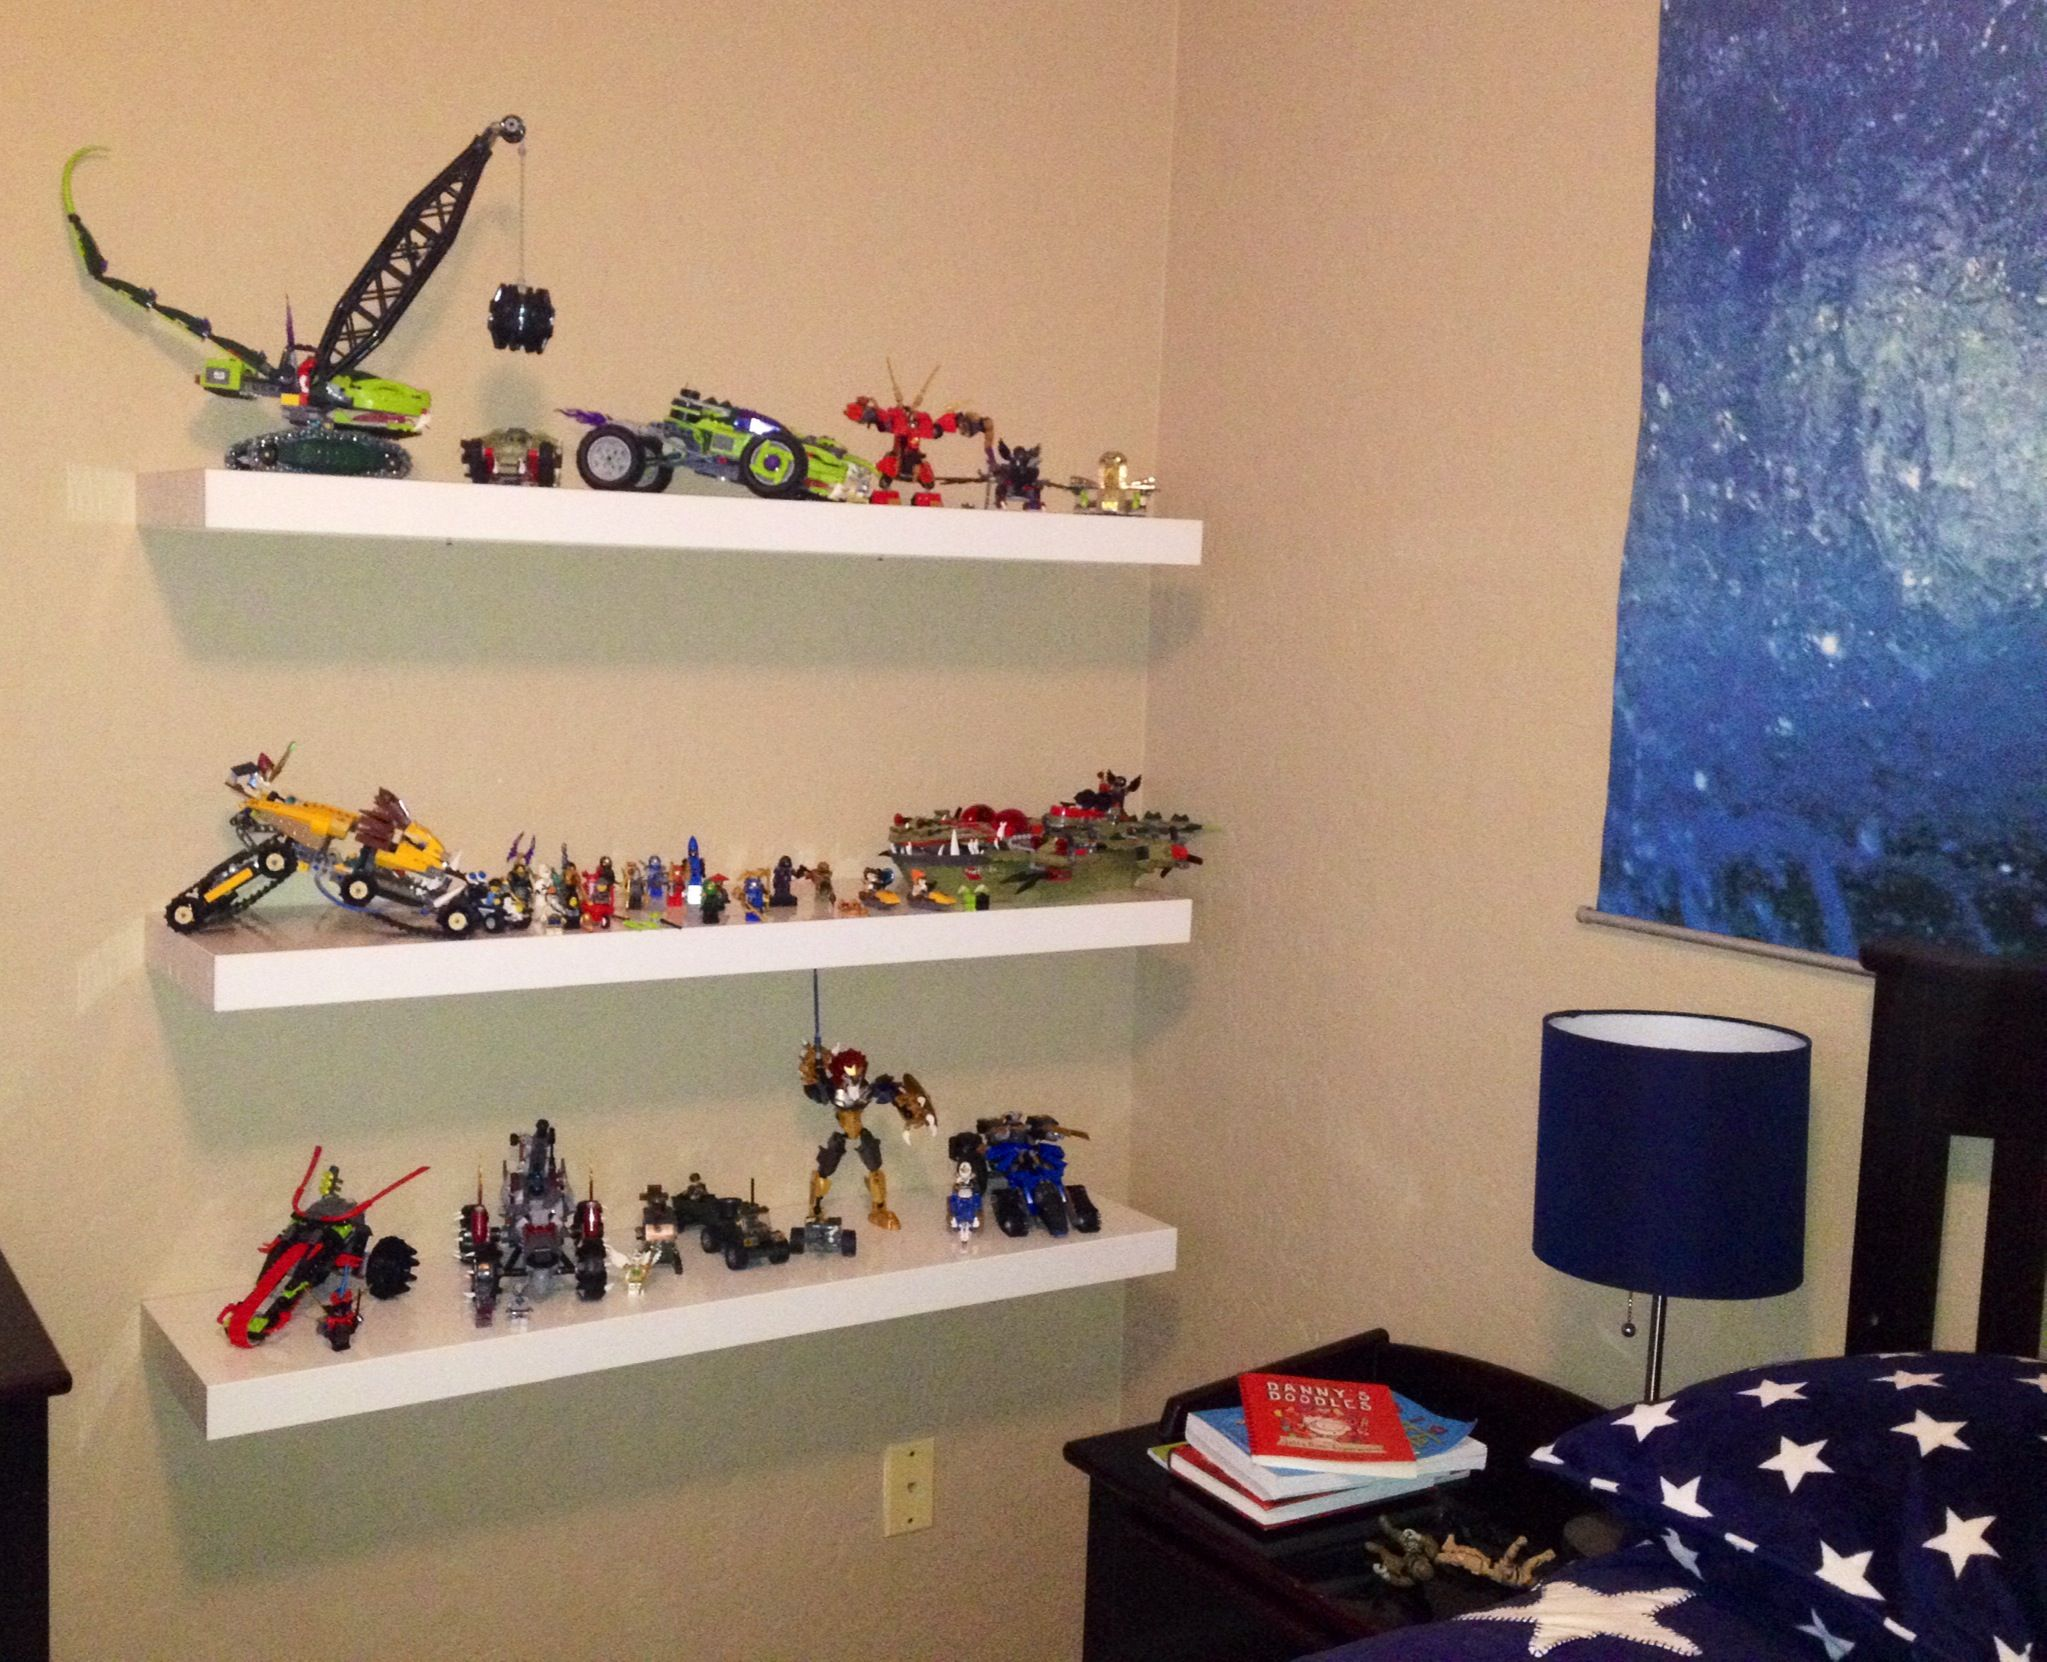 Ikea lack shelf for lego display storage kids 39 room idea for Wall shelves kids room